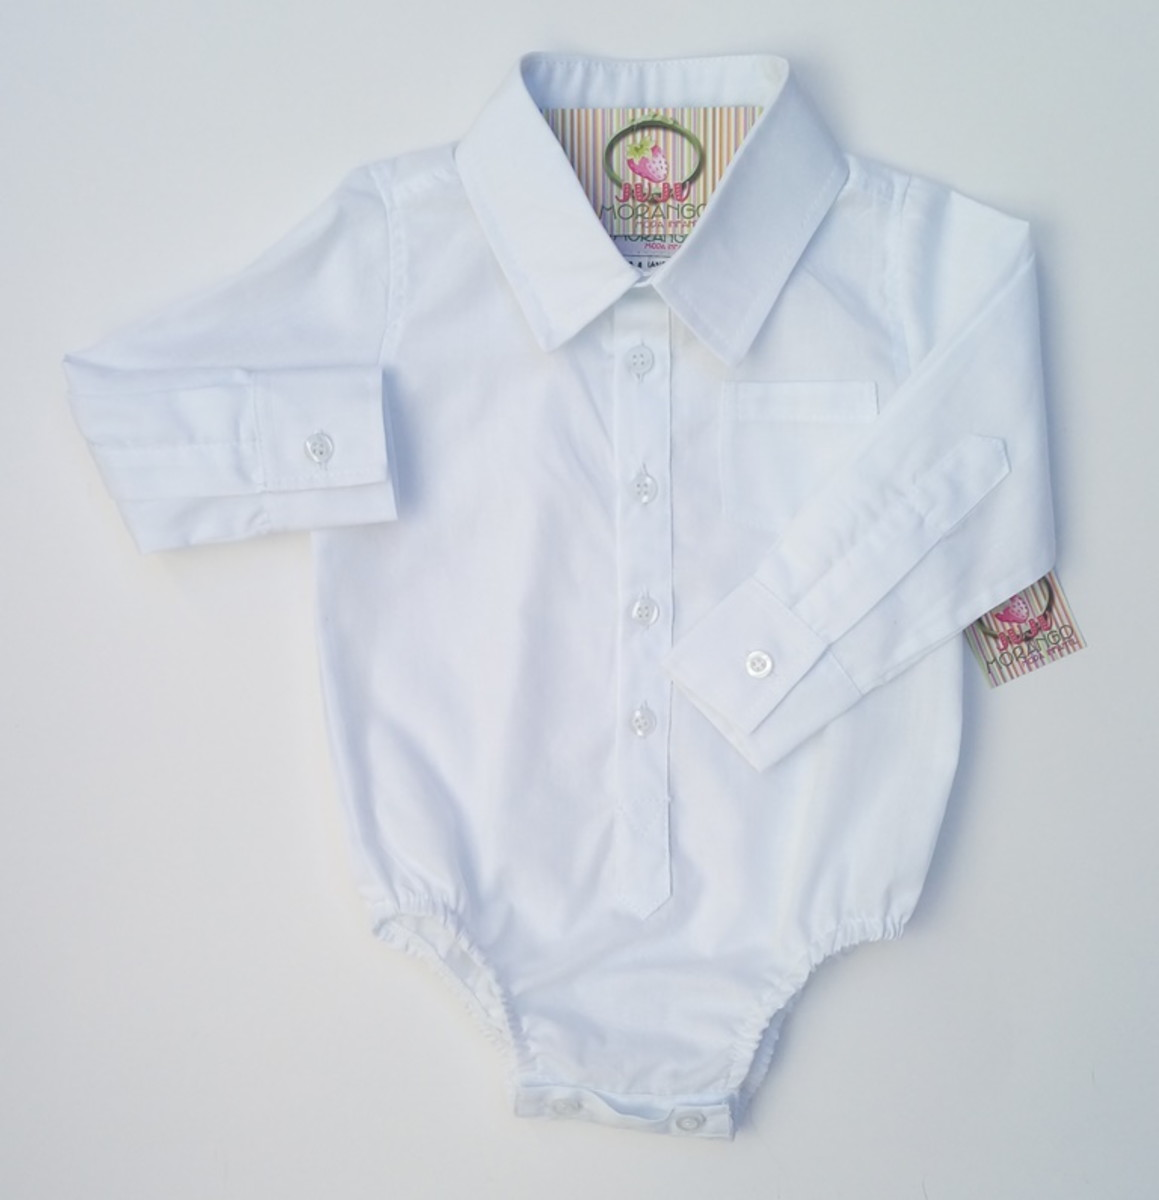 d22f4add9151c Body Camisa Branca Manga Longa no Elo7